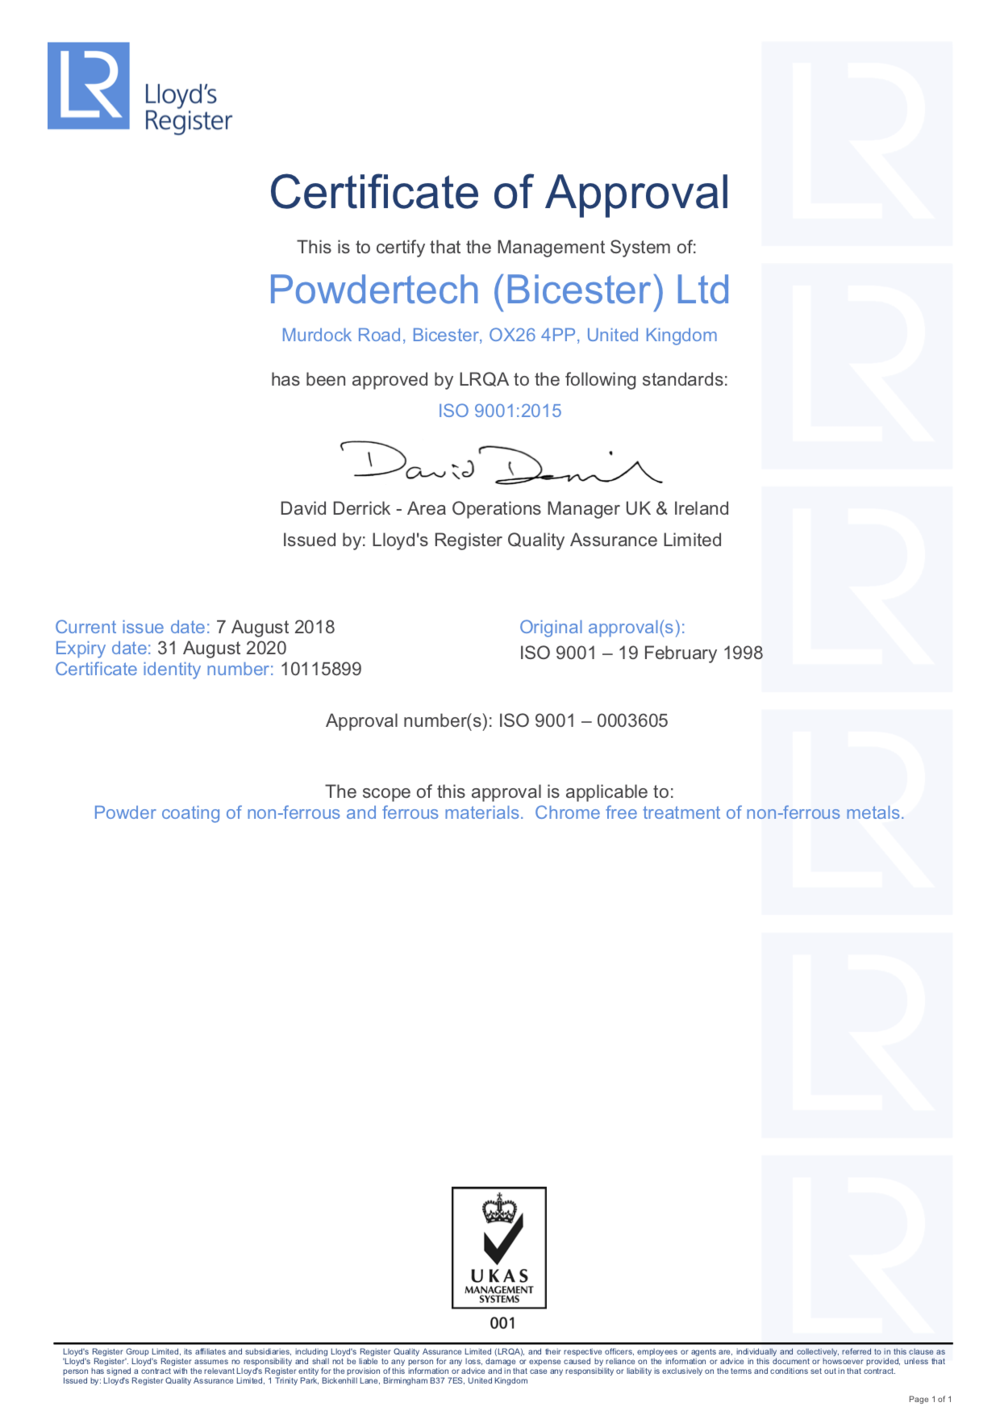 Powdertech (Bicester) Ltd QMS LRQ0959173 expiry Aug 2020 copy.png